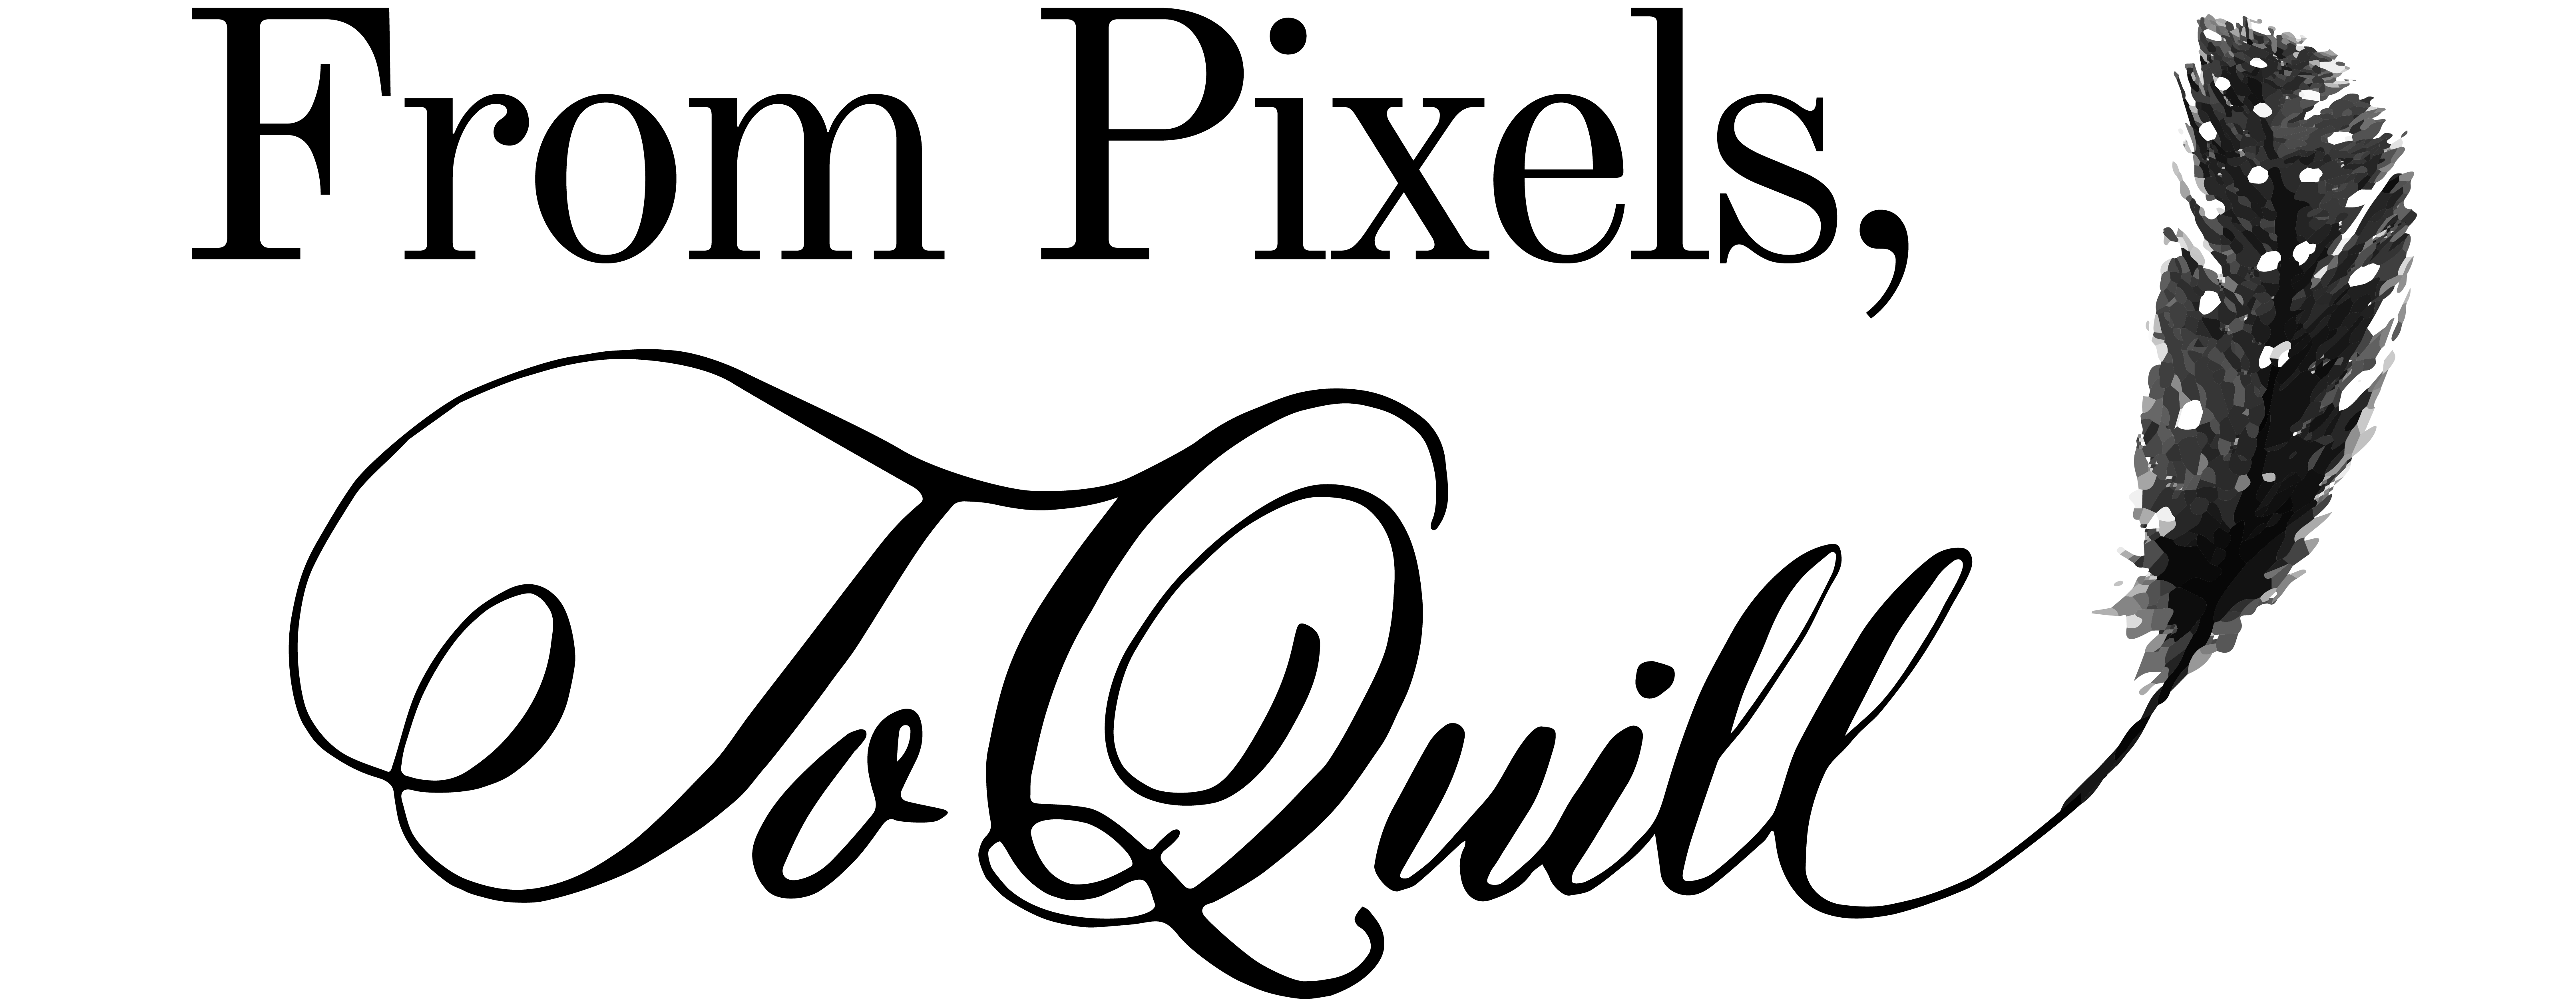 From Pixels, To Quill